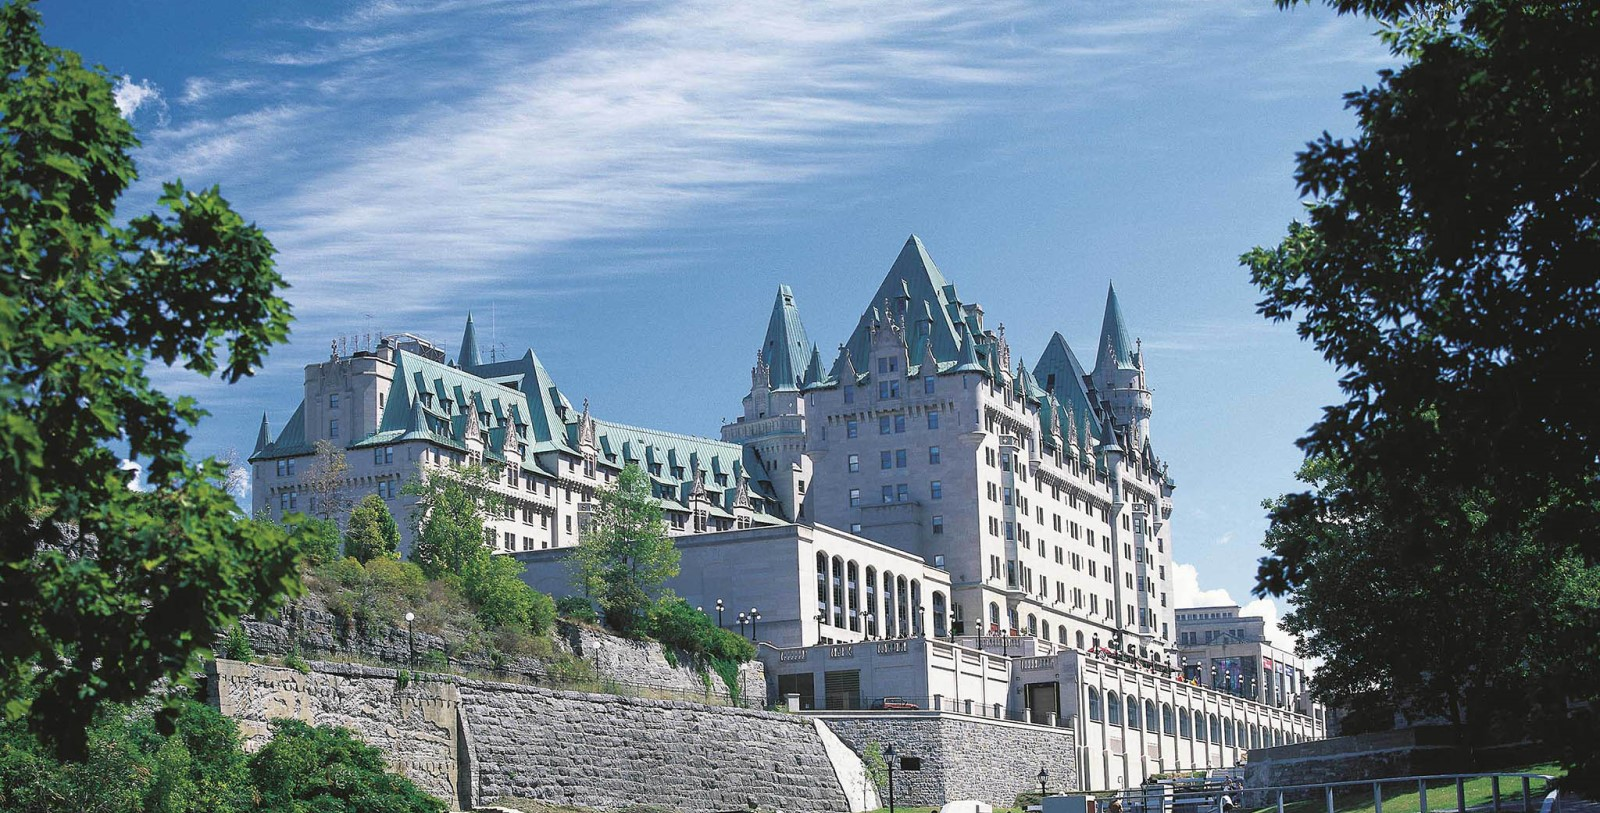 Image of hotel exterior Fairmont Château Laurier, 1912, Member of Historic Hotels Worldwide, in Ottowa, Canada, Special Offers, Discounted Rates, Families, Romantic Escape, Honeymoons, Anniversaries, Reunions